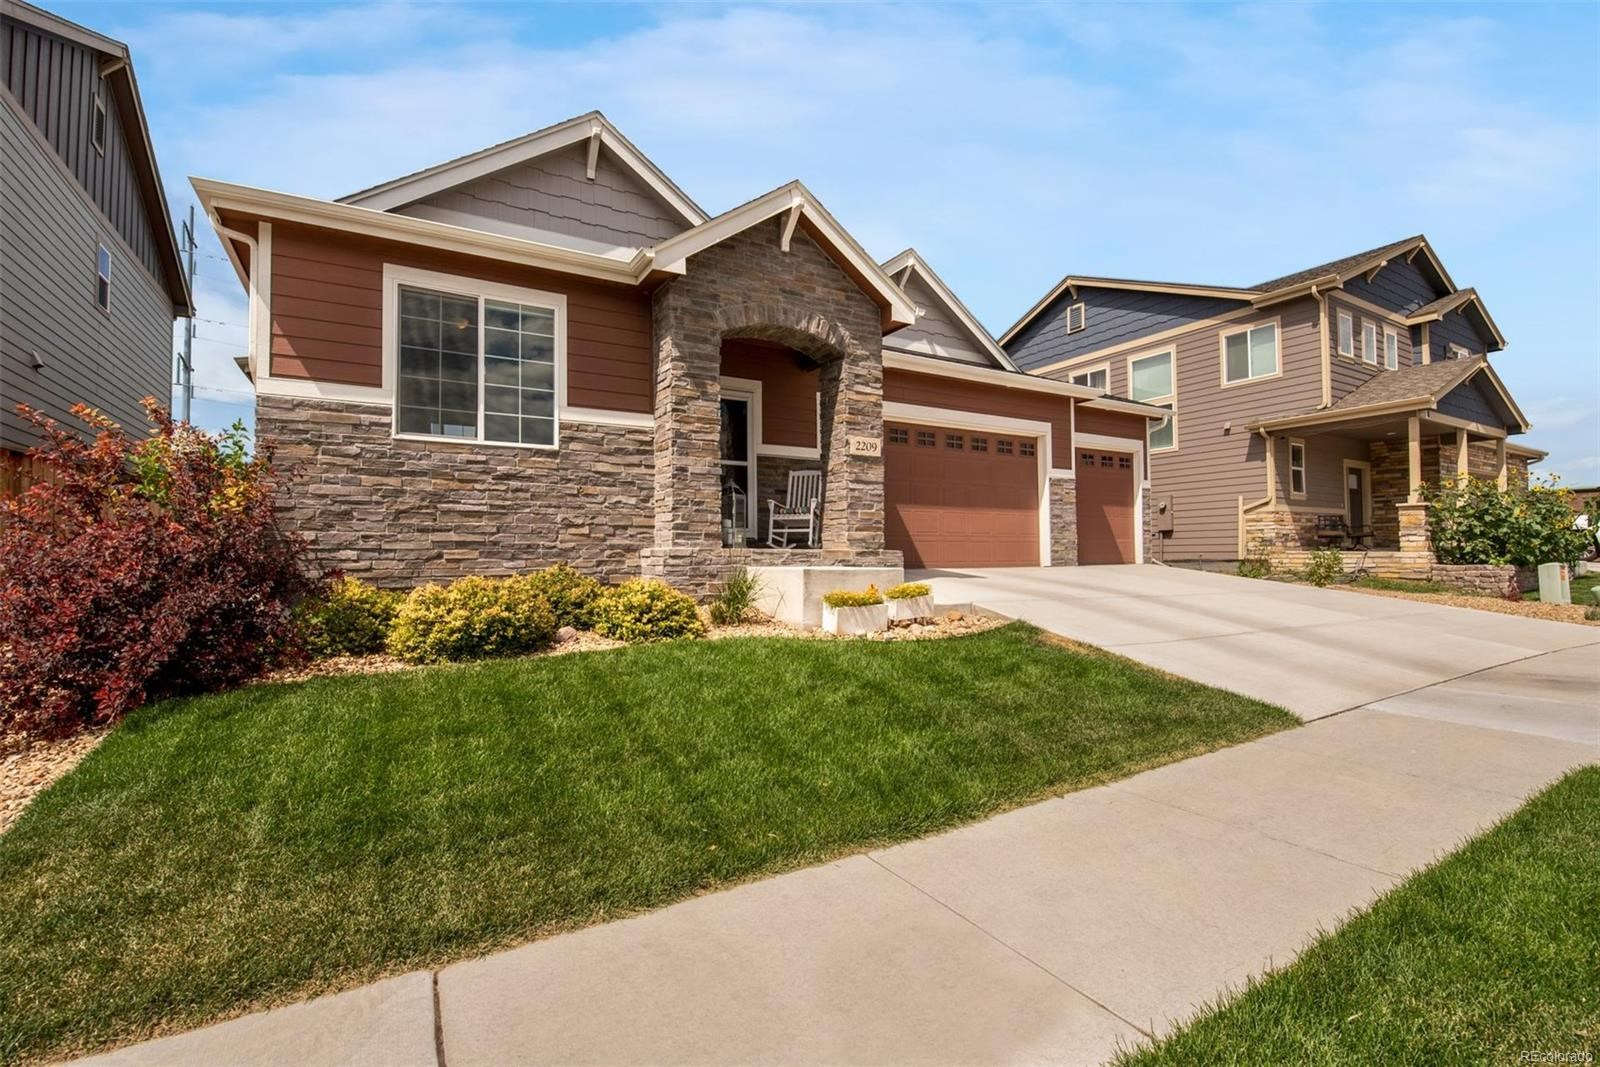 MLS# 7603789 - 2 - 2209 Adobe Drive, Fort Collins, CO 80525